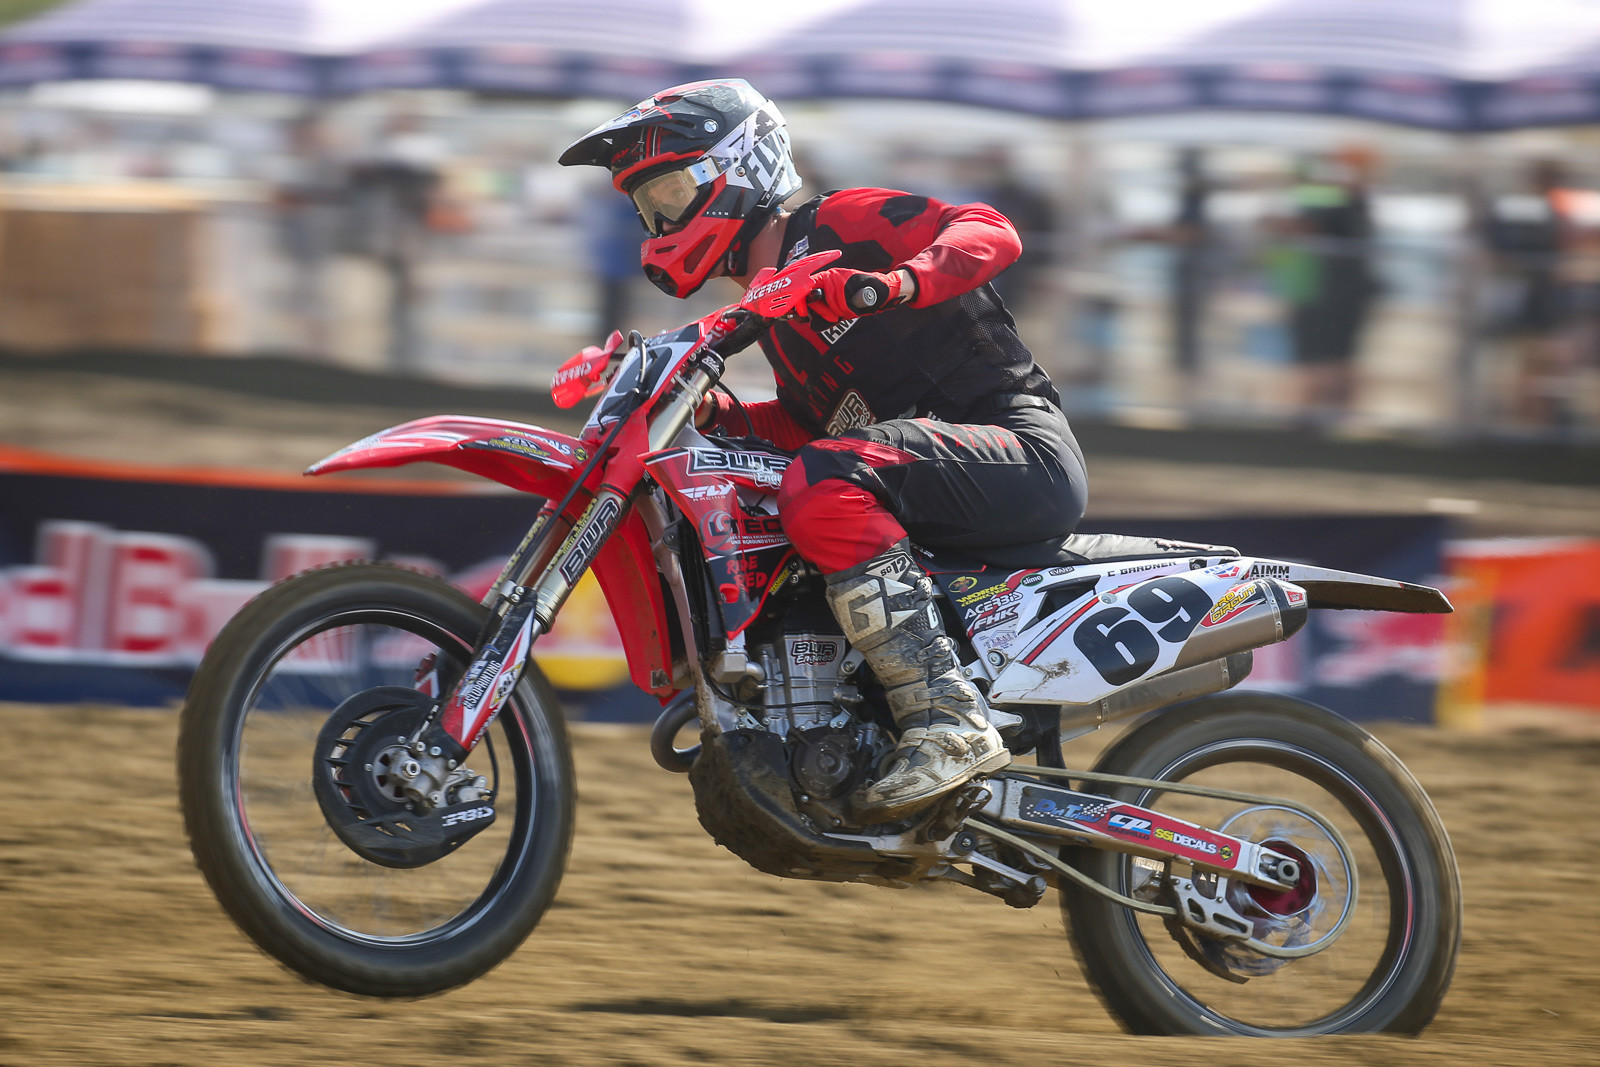 Carlen Gardner only raced the two motos at Fox Raceway, but he showed some good speed, moving up a combined 24 spots over the two motos.